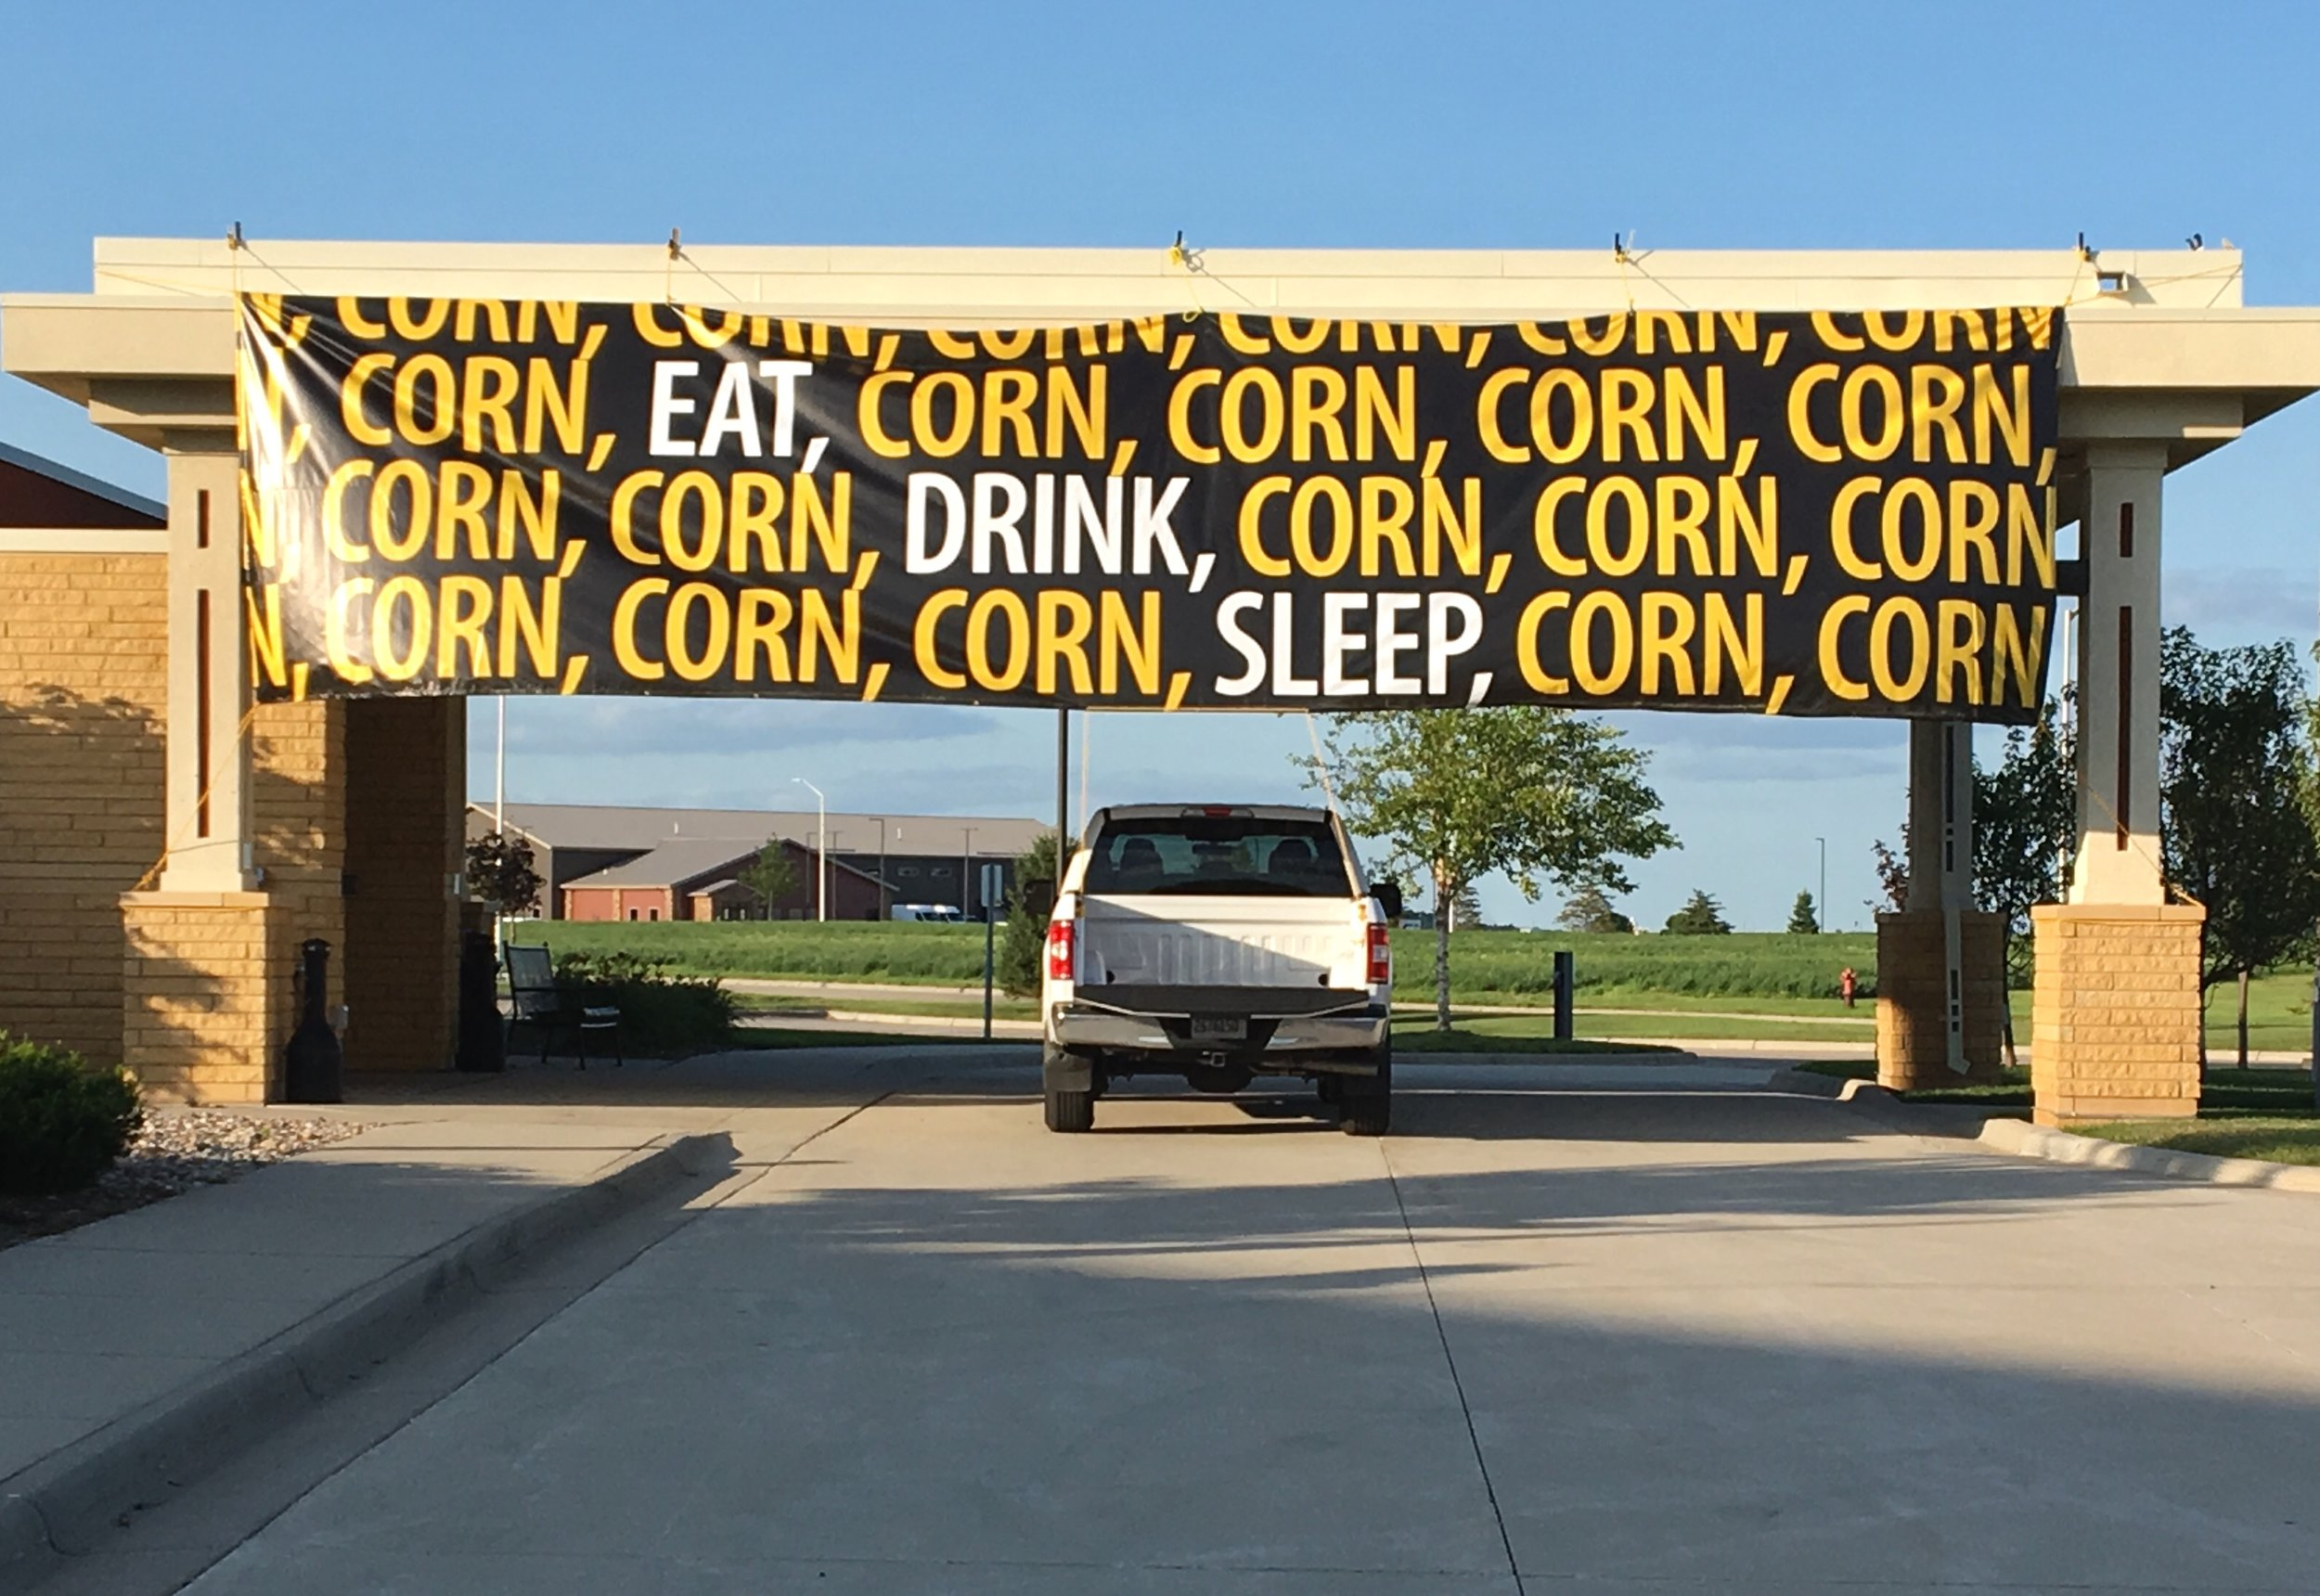 - We shared the hotel in Worthington, MN, with attendees at a corn convention, fitting because there is so much corn here in MN. There was a monstrous John Deere combine in the parking lot that harvests and shells 12 rows of corn in a single pass.